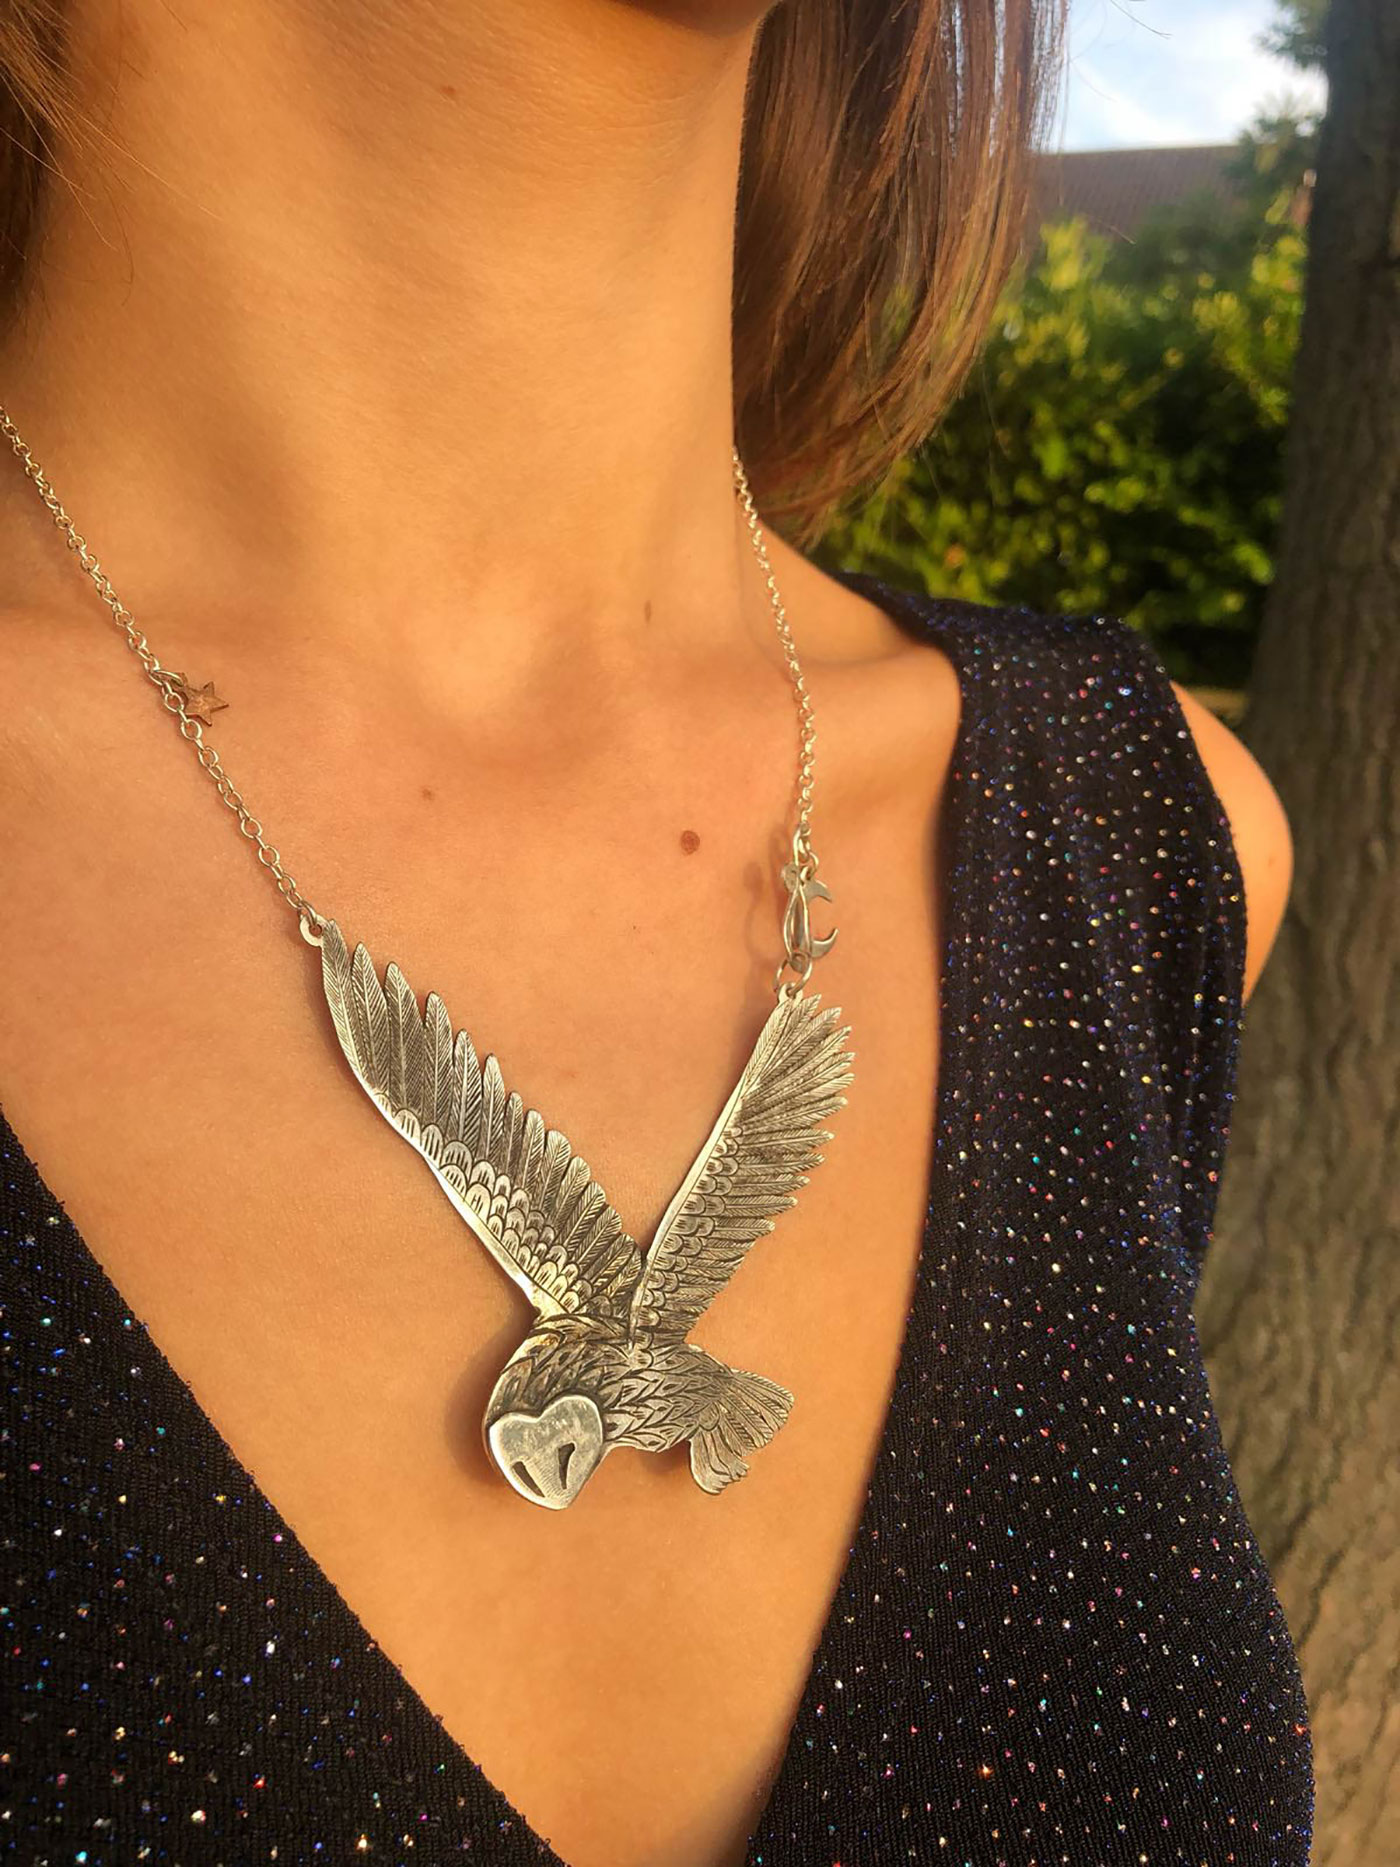 Owl jewellery - ethical handcrafted and recycled jewellery made by independent artisan workshop in Cambridge England